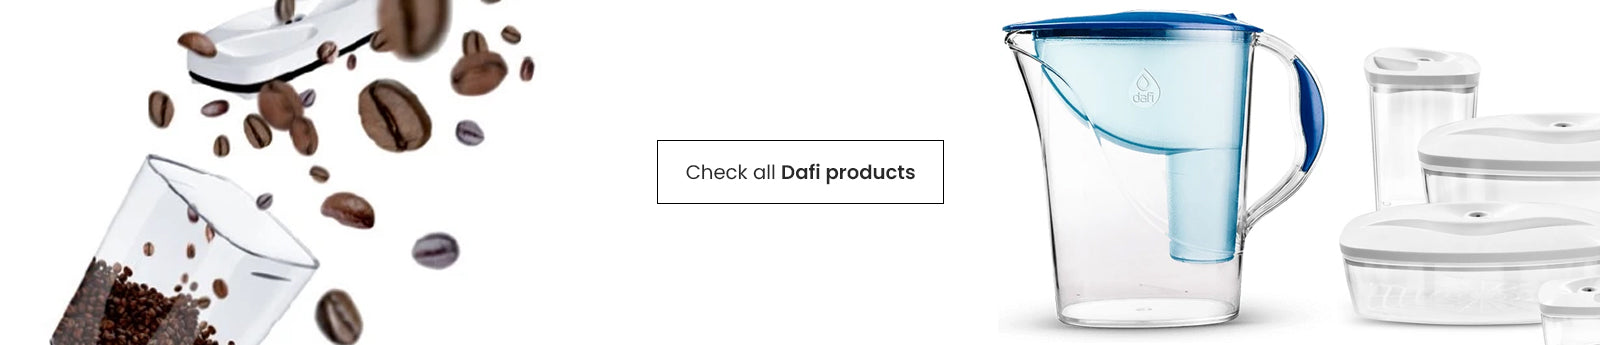 dafi products